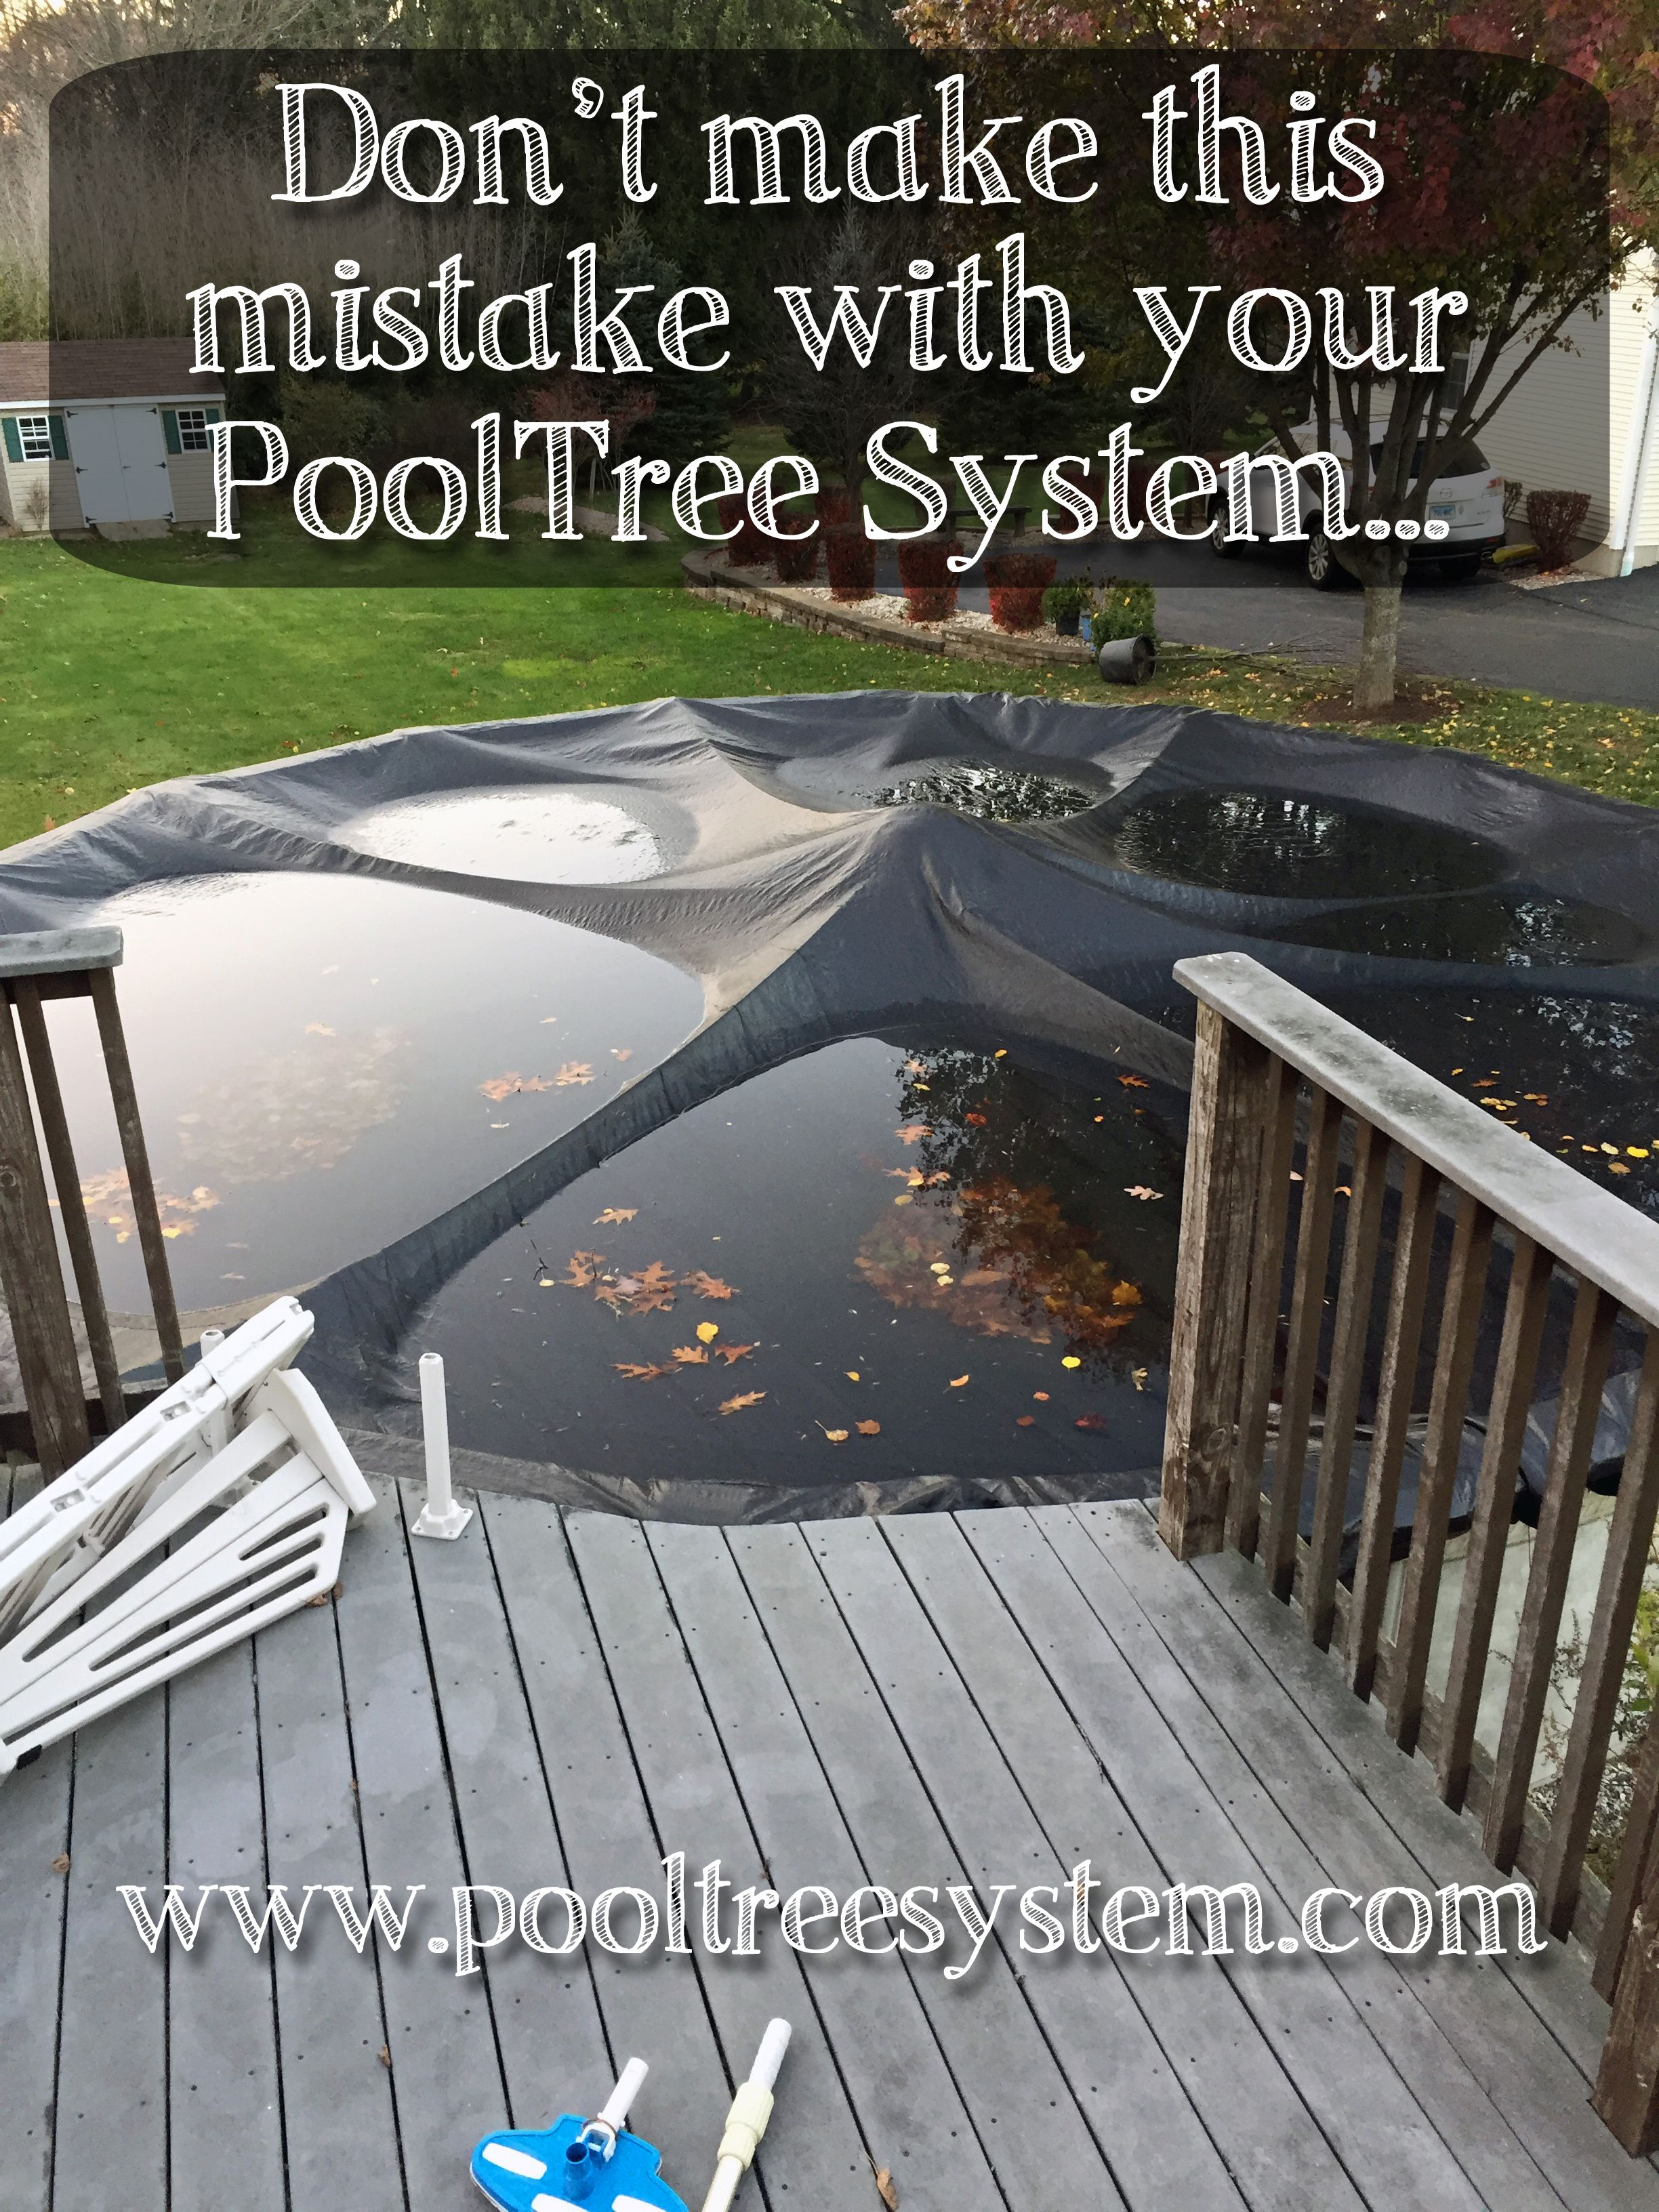 Leave skimmer and returns open... Winter pool covers